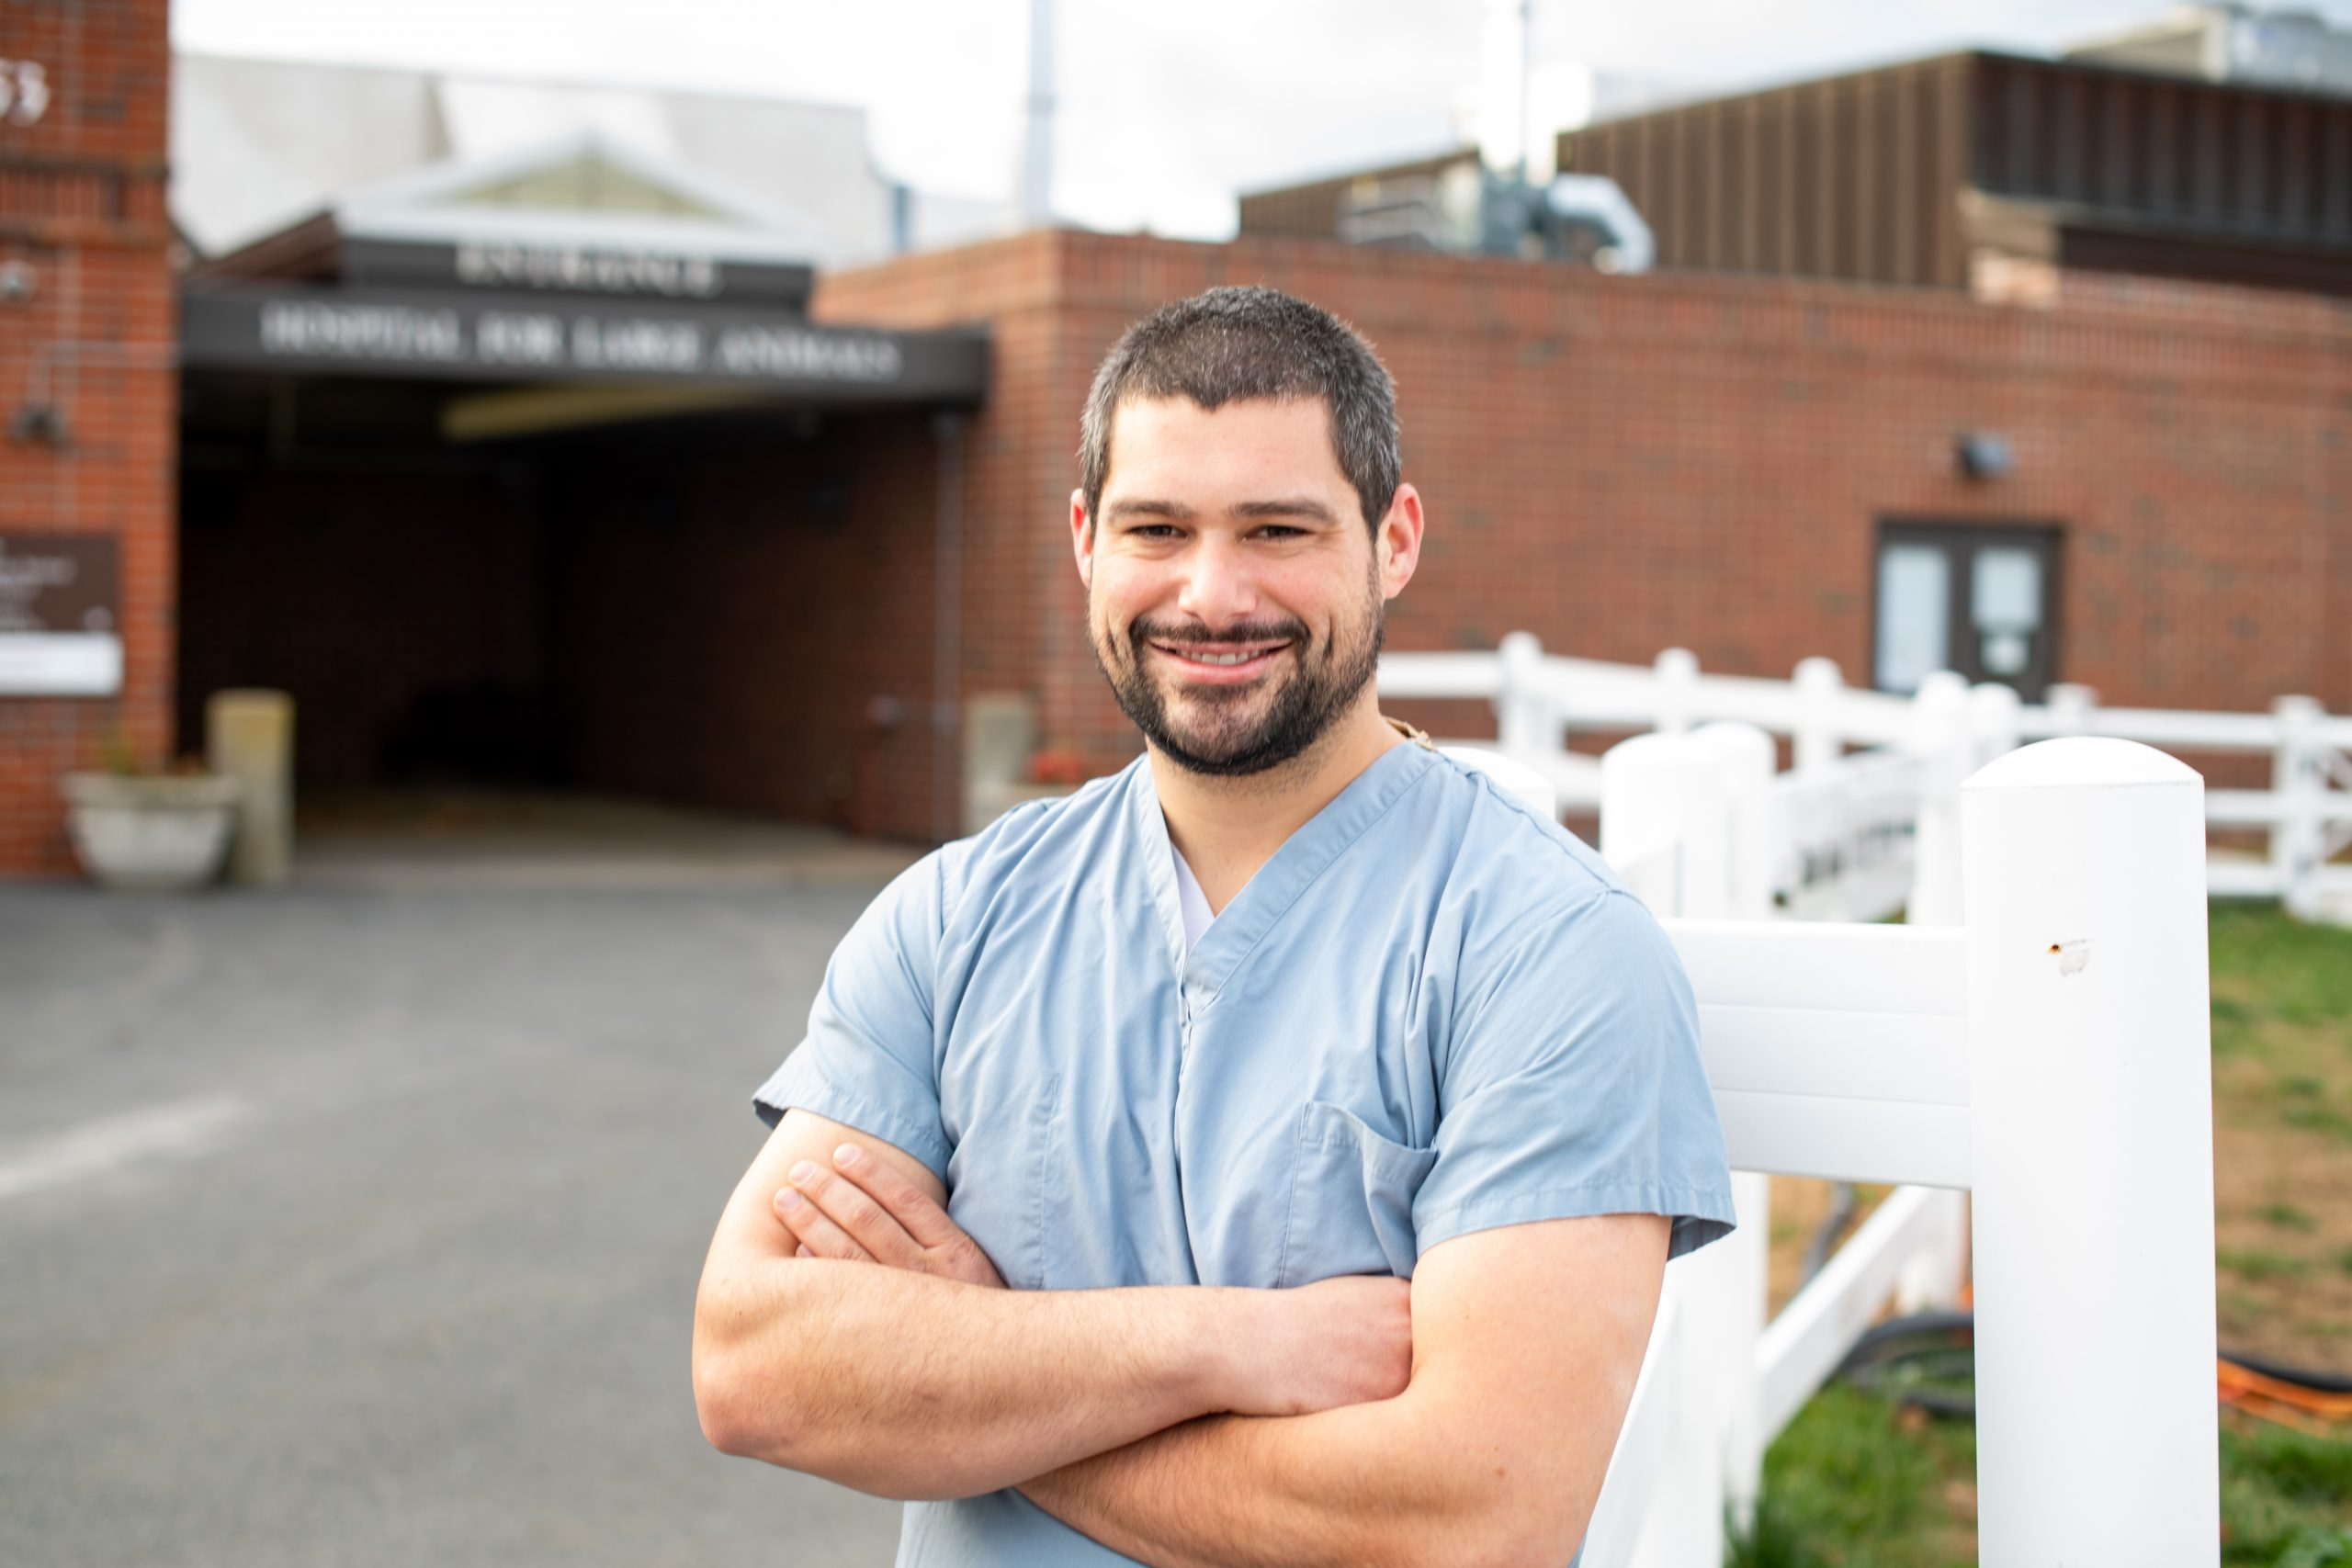 Joshua Peters, Diagnostic Imaging Technician, poses for a photo outside the Large Animal Hospital on campus at Cummings School of Veterinary Medicine at Tufts University on November 17, 2020.